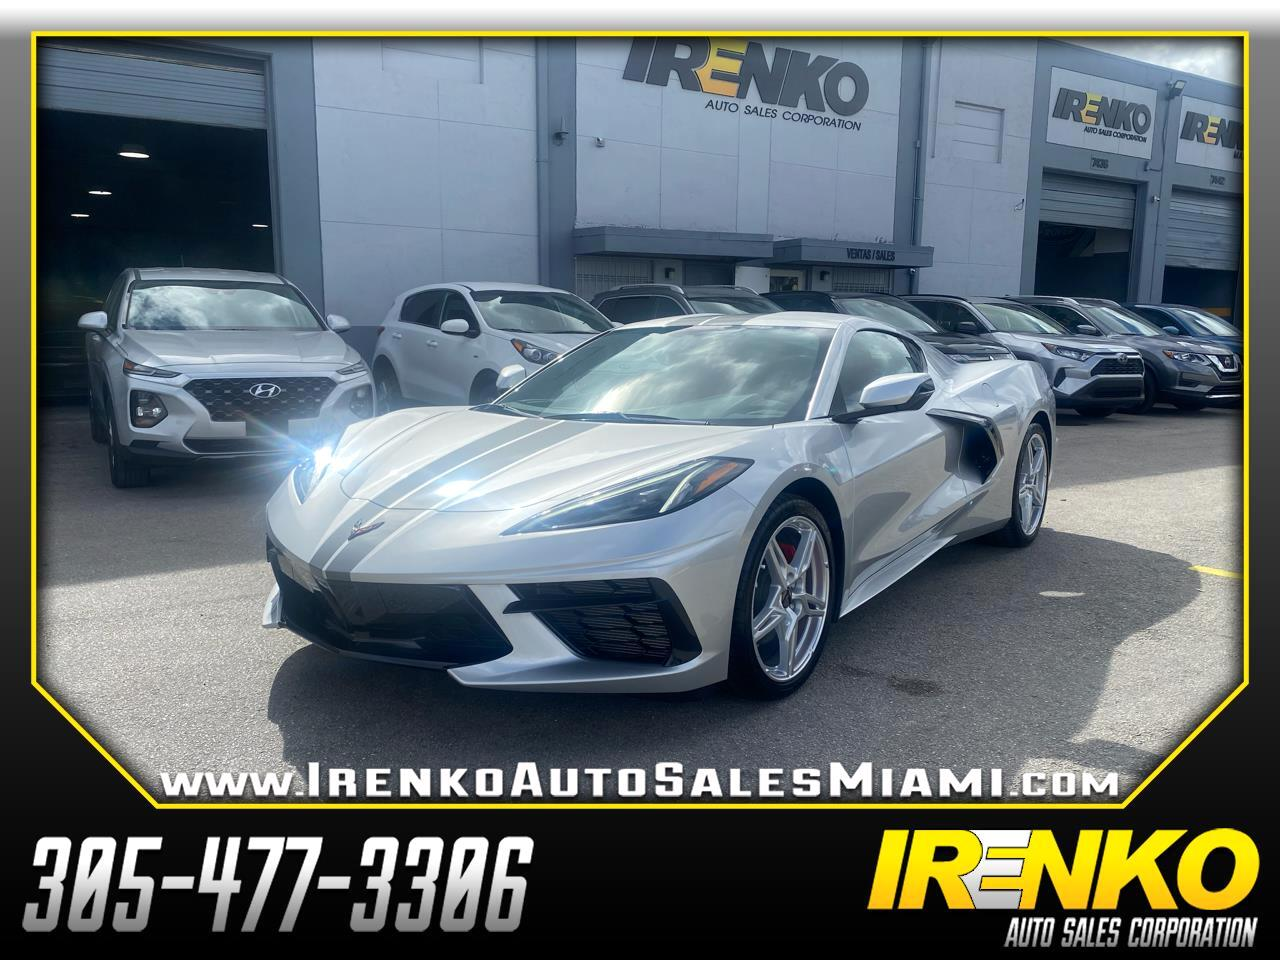 Chevrolet Corvette 2dr Stingray Cpe w/1LT 2020